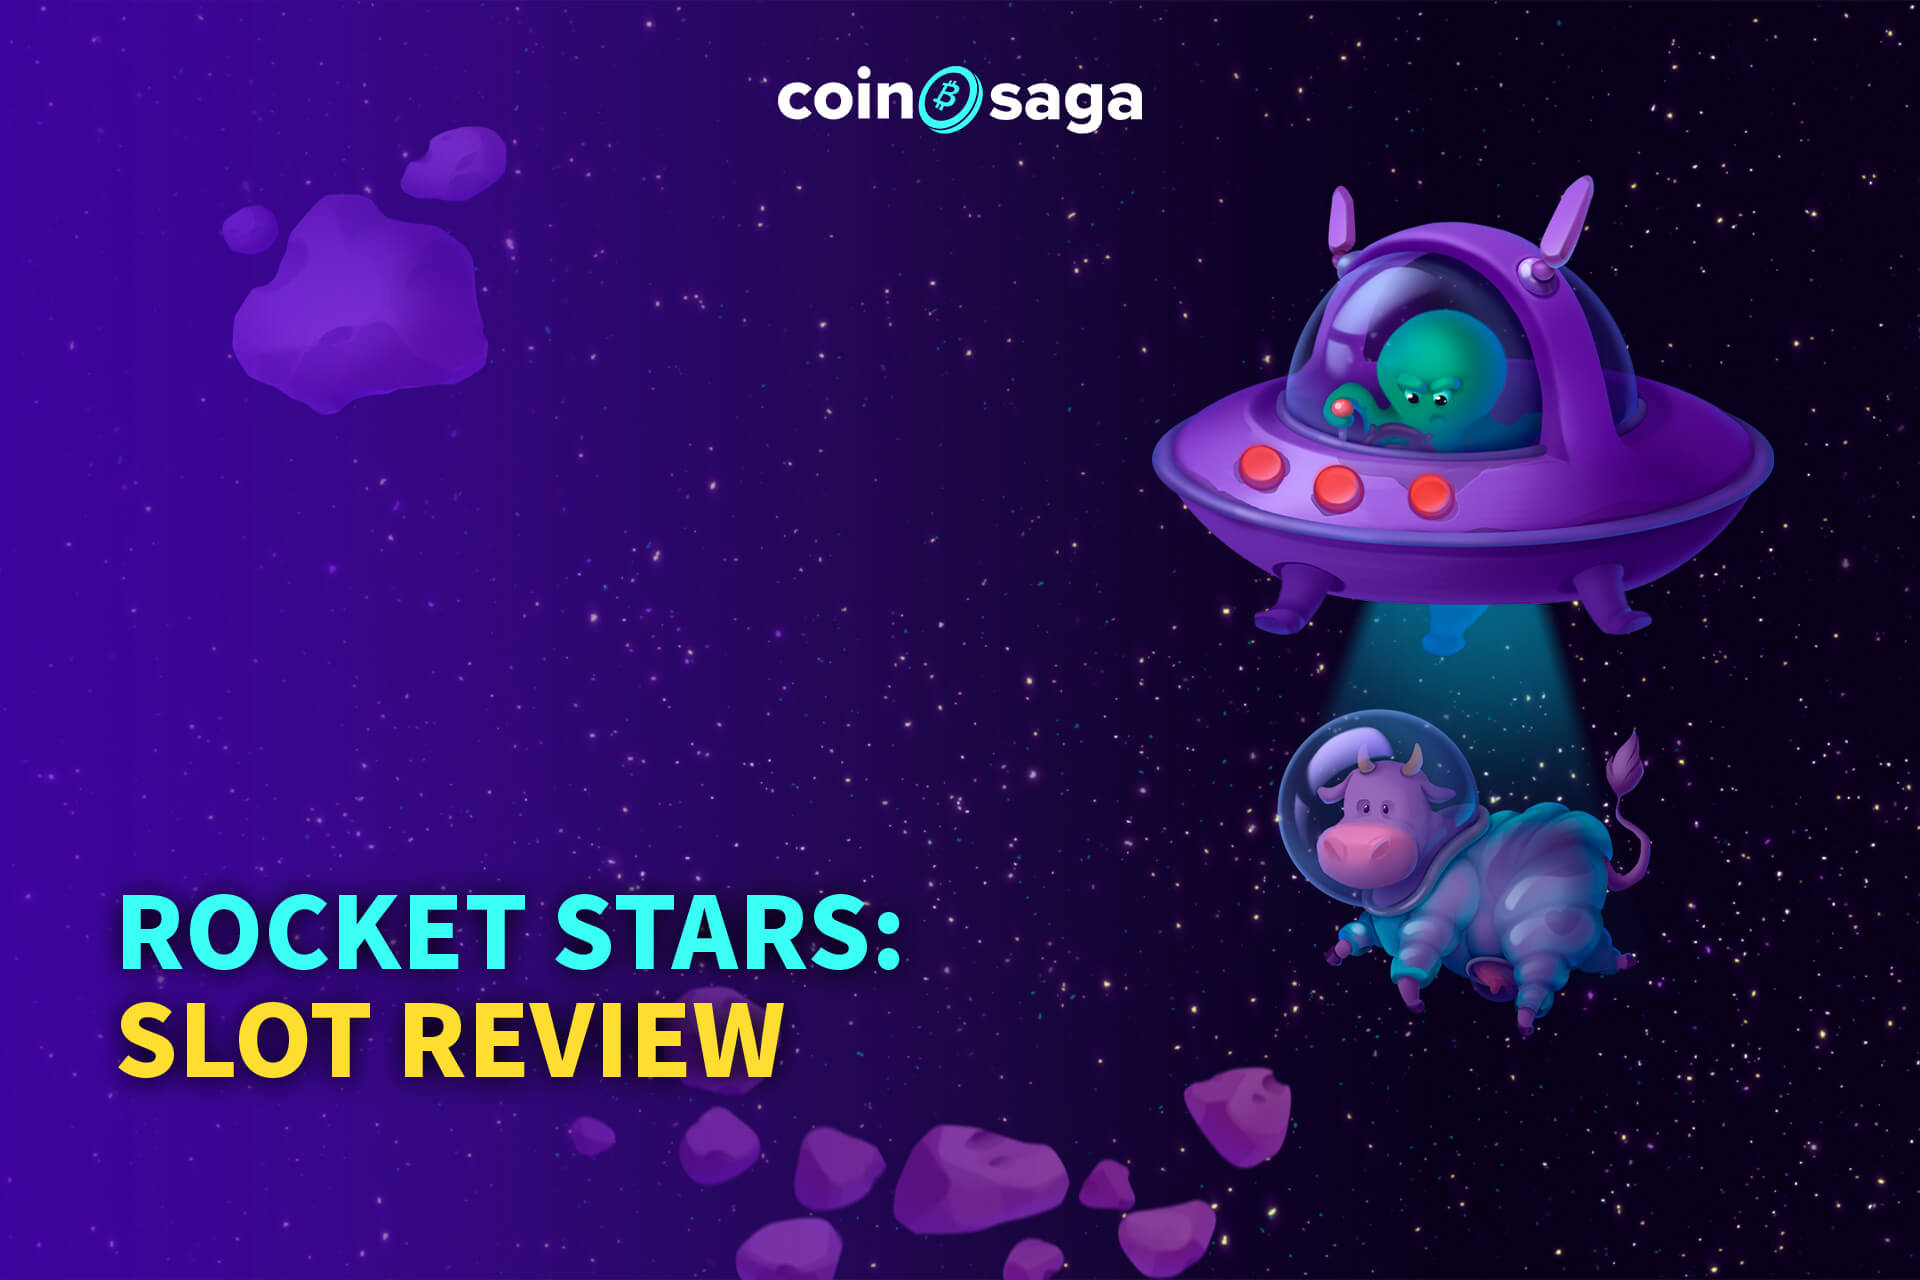 Rocket Stars Slot Review